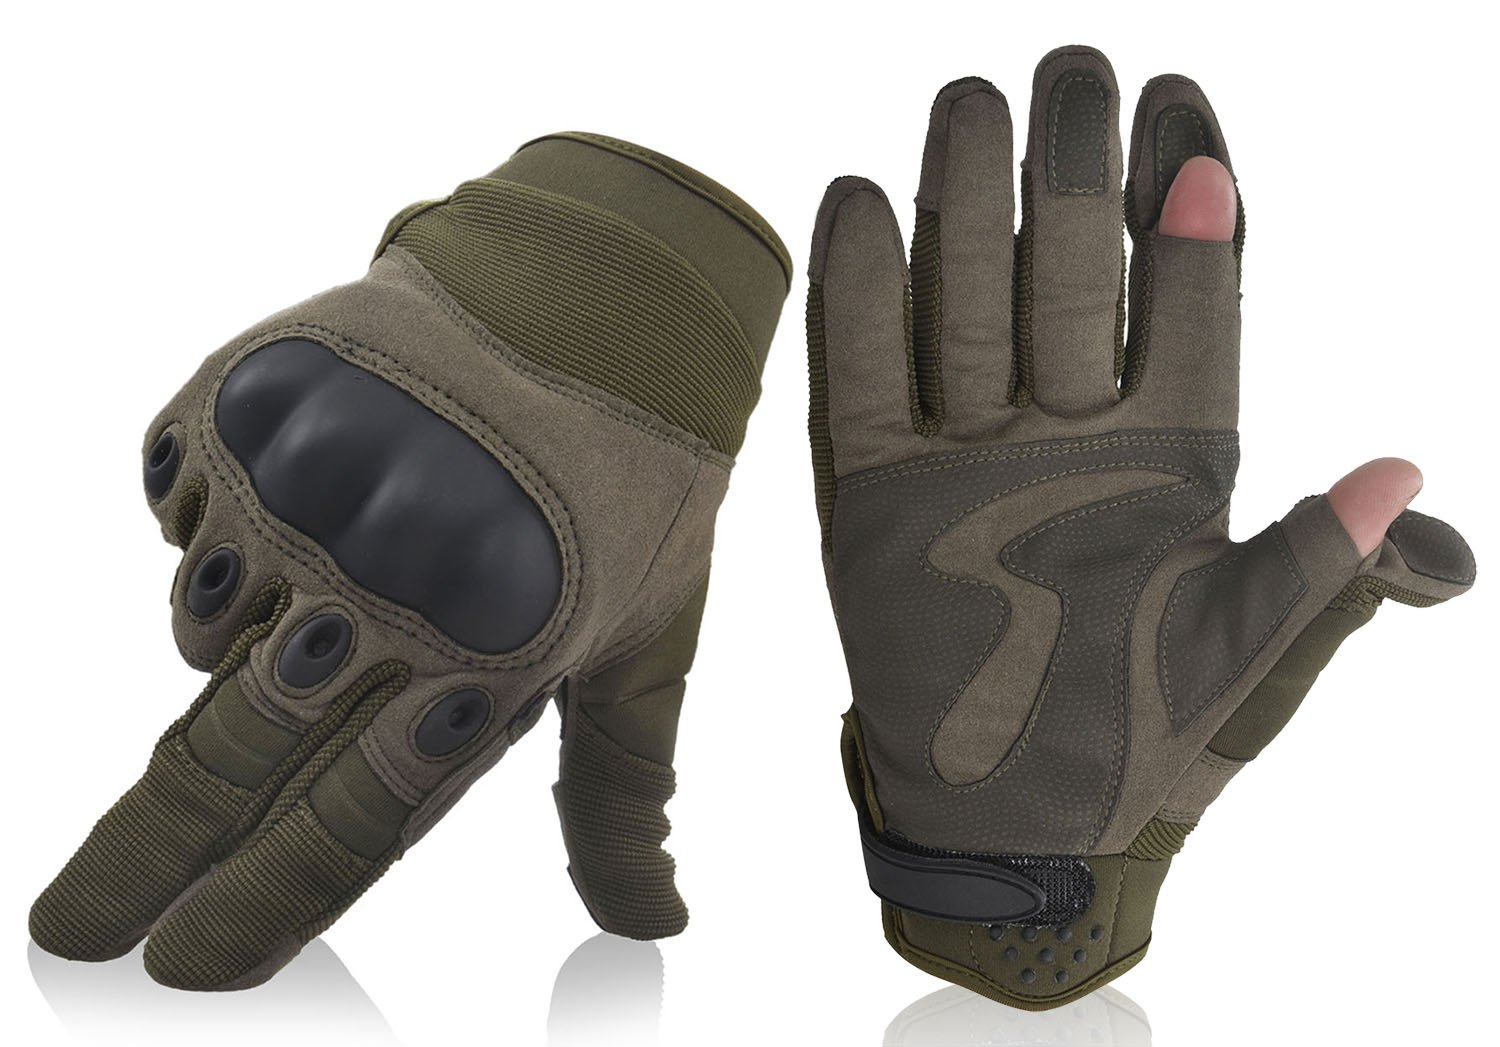 Simplicity Military Gear Non-Slip Cycling Motorcycle Gloves, 7424_Army Green L